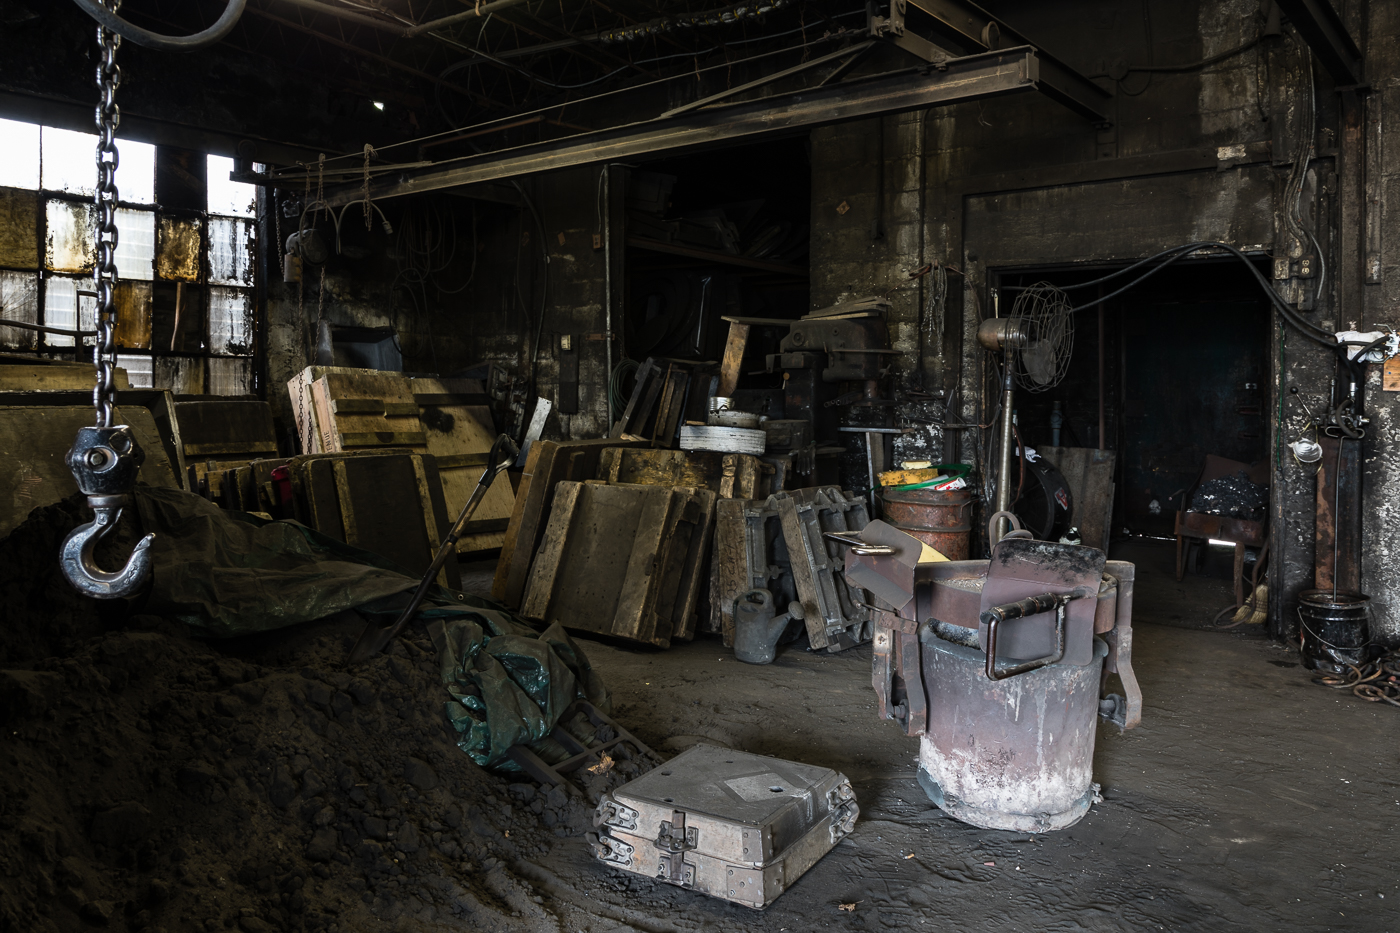 At the Back of the Foundry